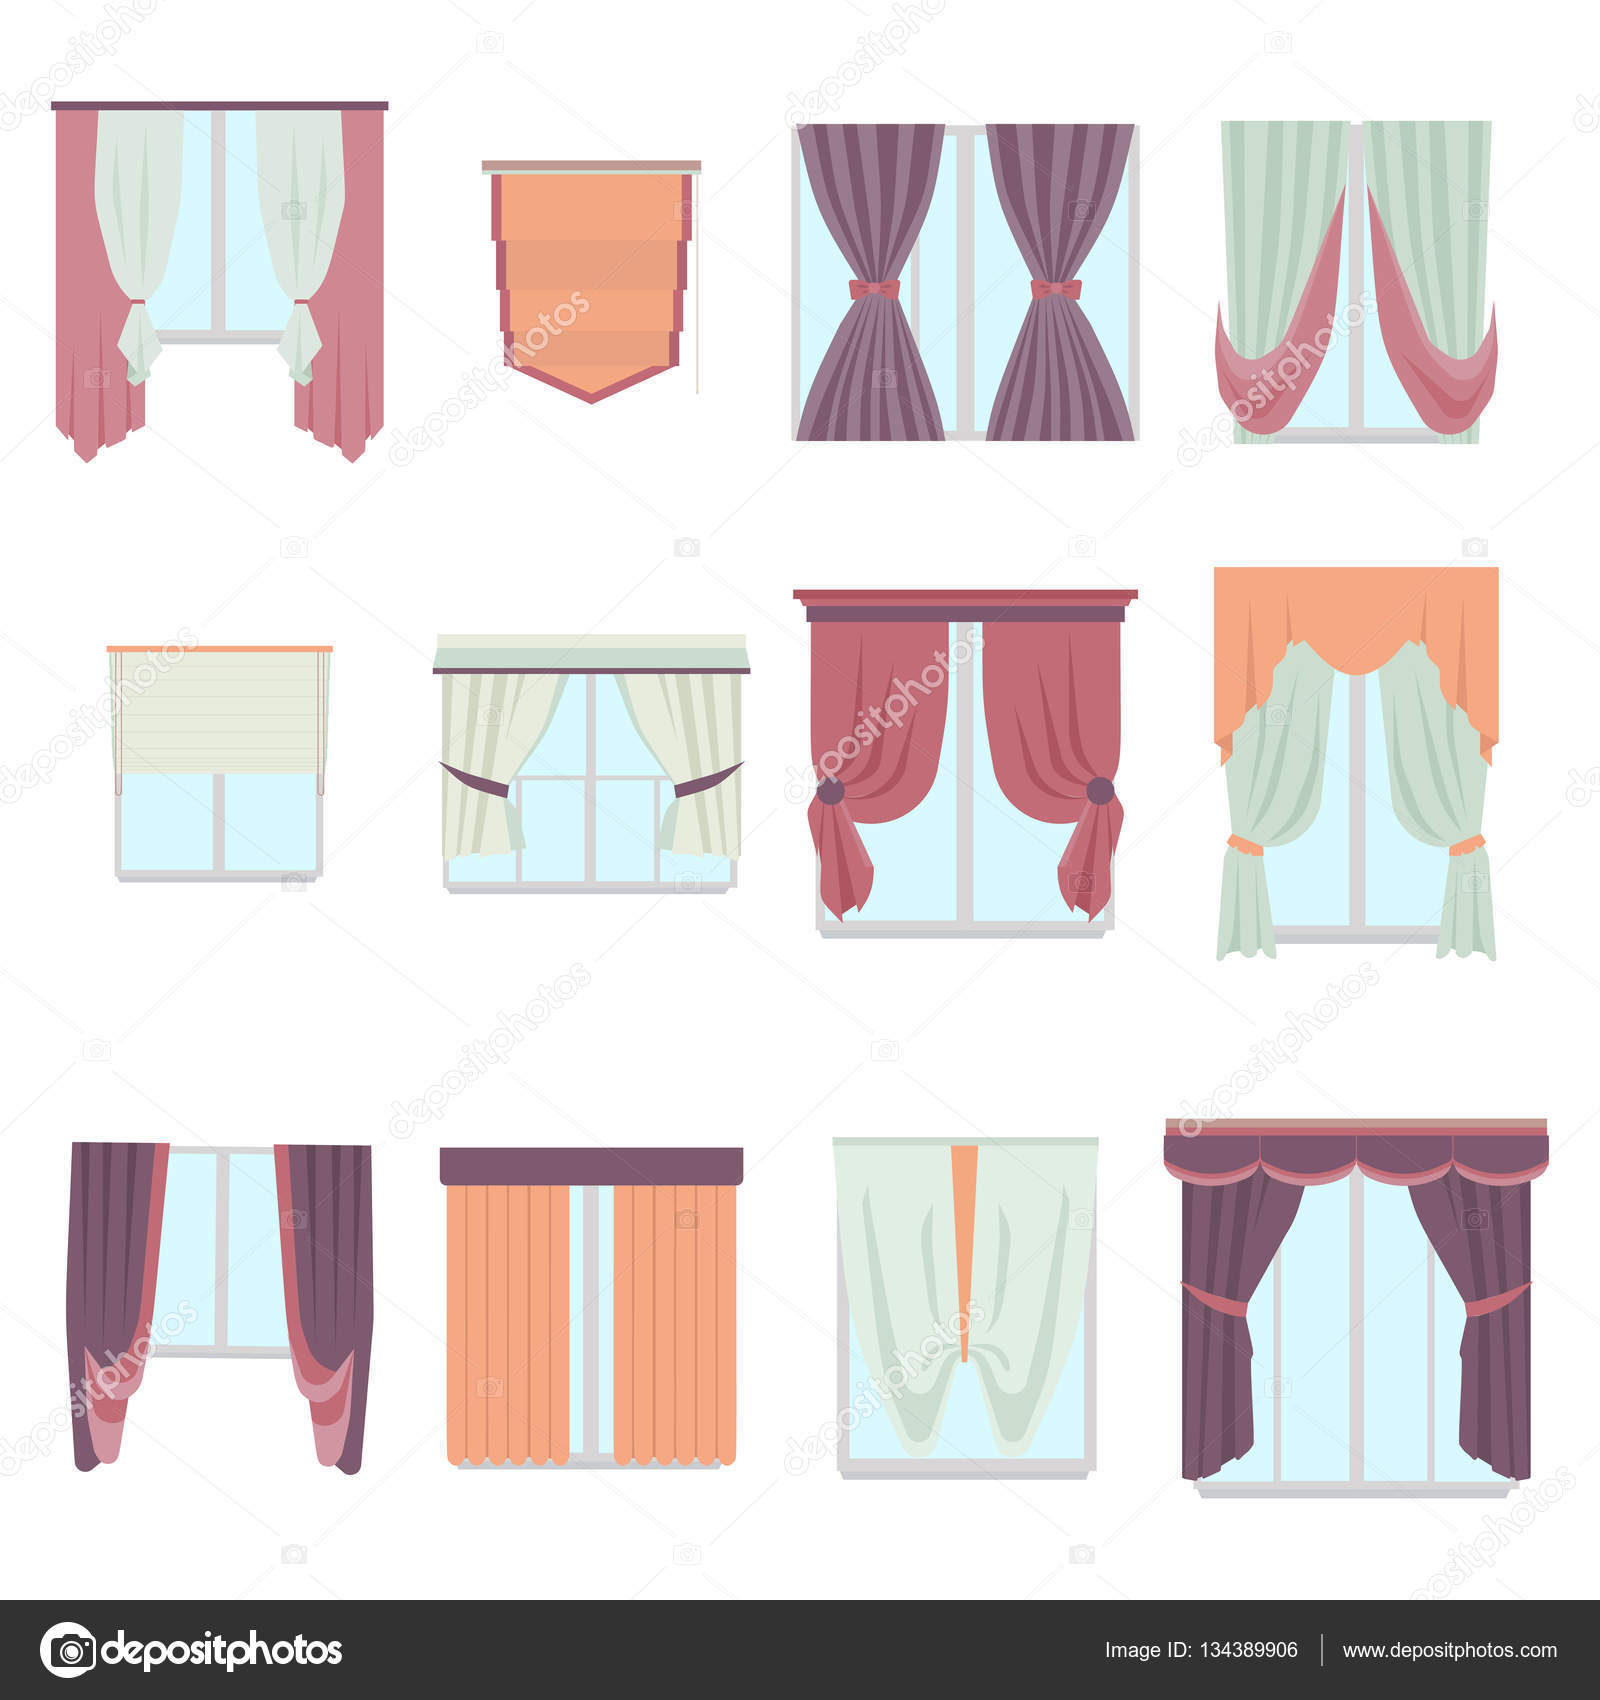 big collection of various window decoration curtains in flat style